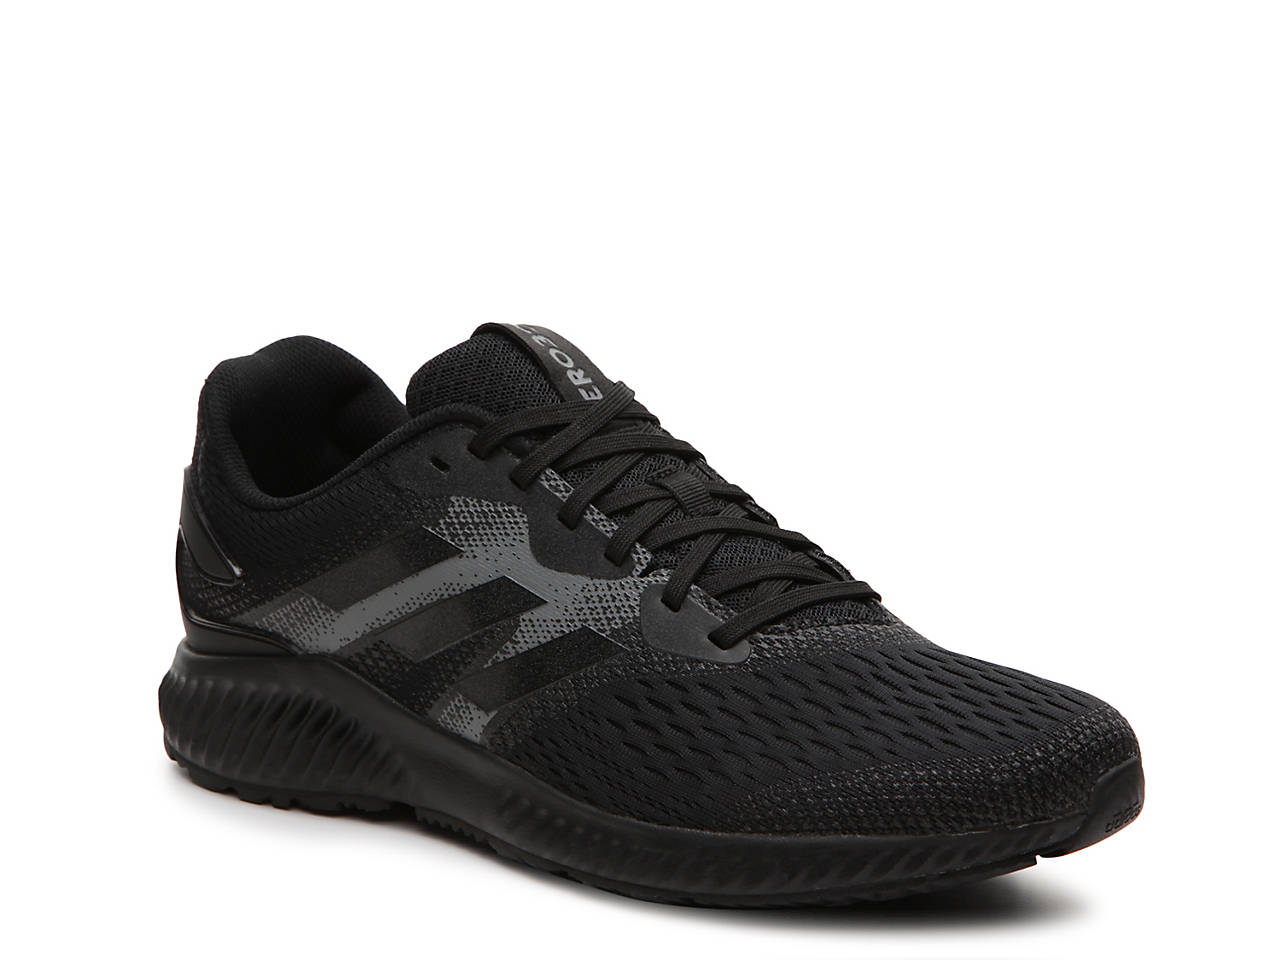 huge discount ccd63 a8933 Aerobounce CQ0819 Performance Running Shoe - Men s